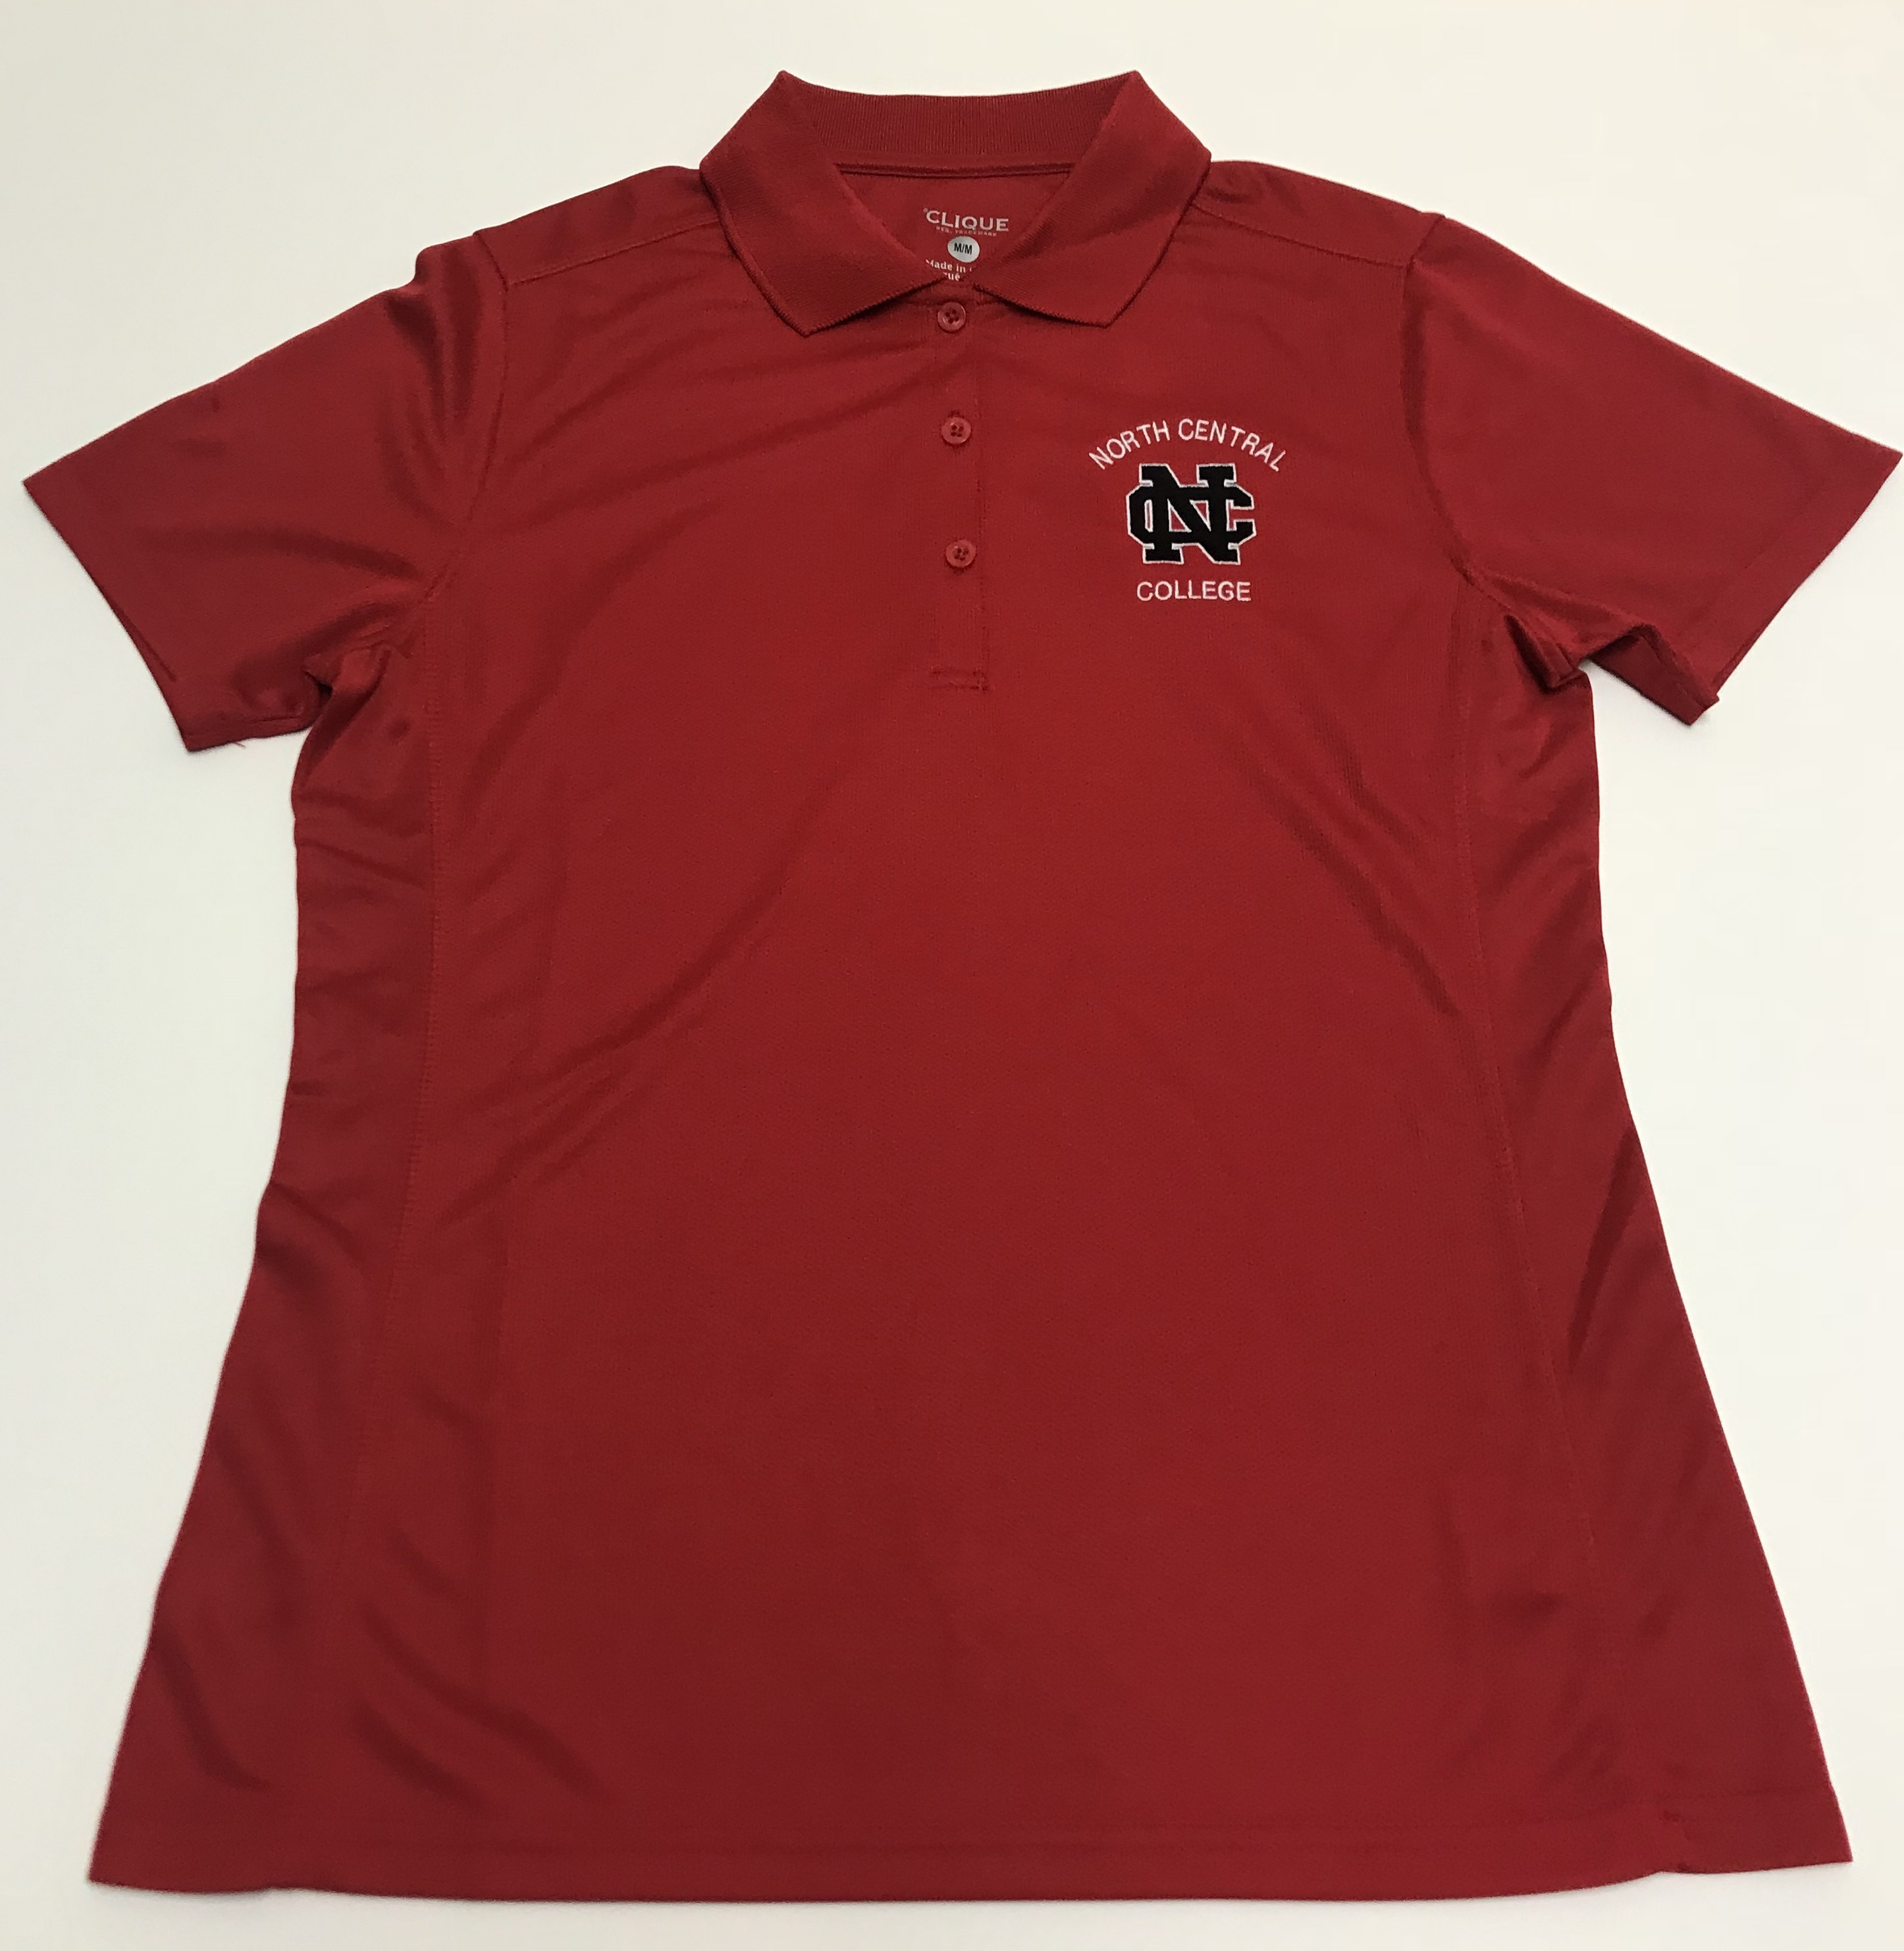 Image for the Clique Women's Tech Polo product